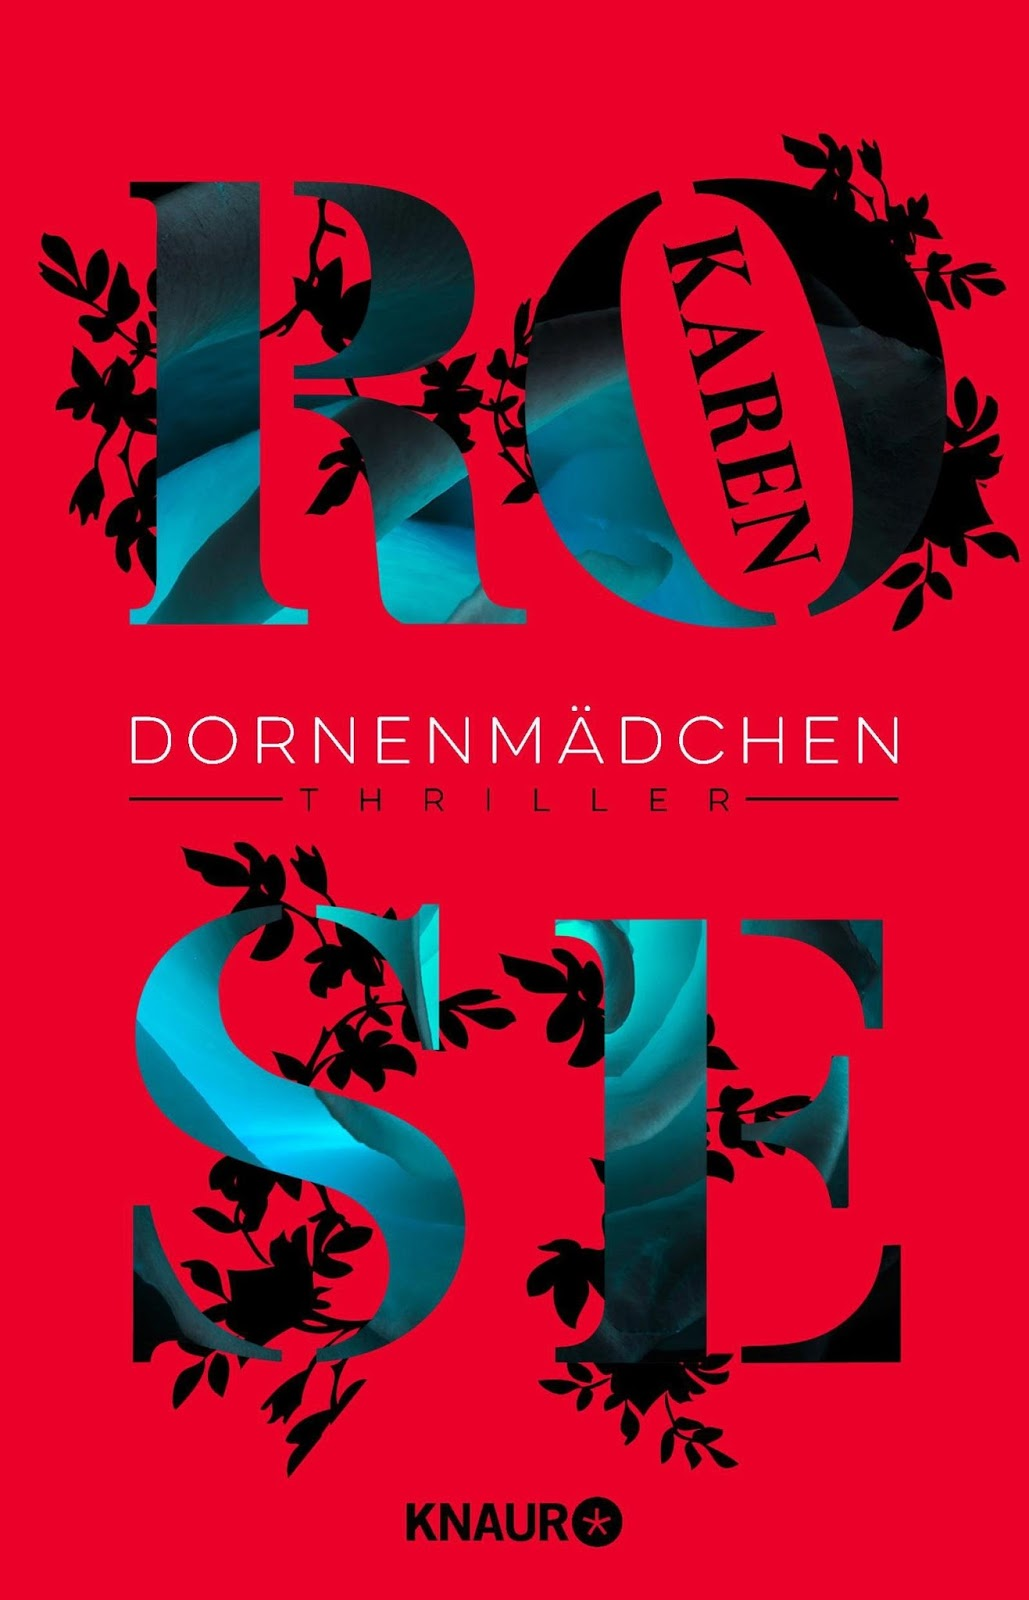 http://nothingbutn9erz.blogspot.co.at/2015/10/dornenmaedchen-karen-rose-knaur-rezension.html